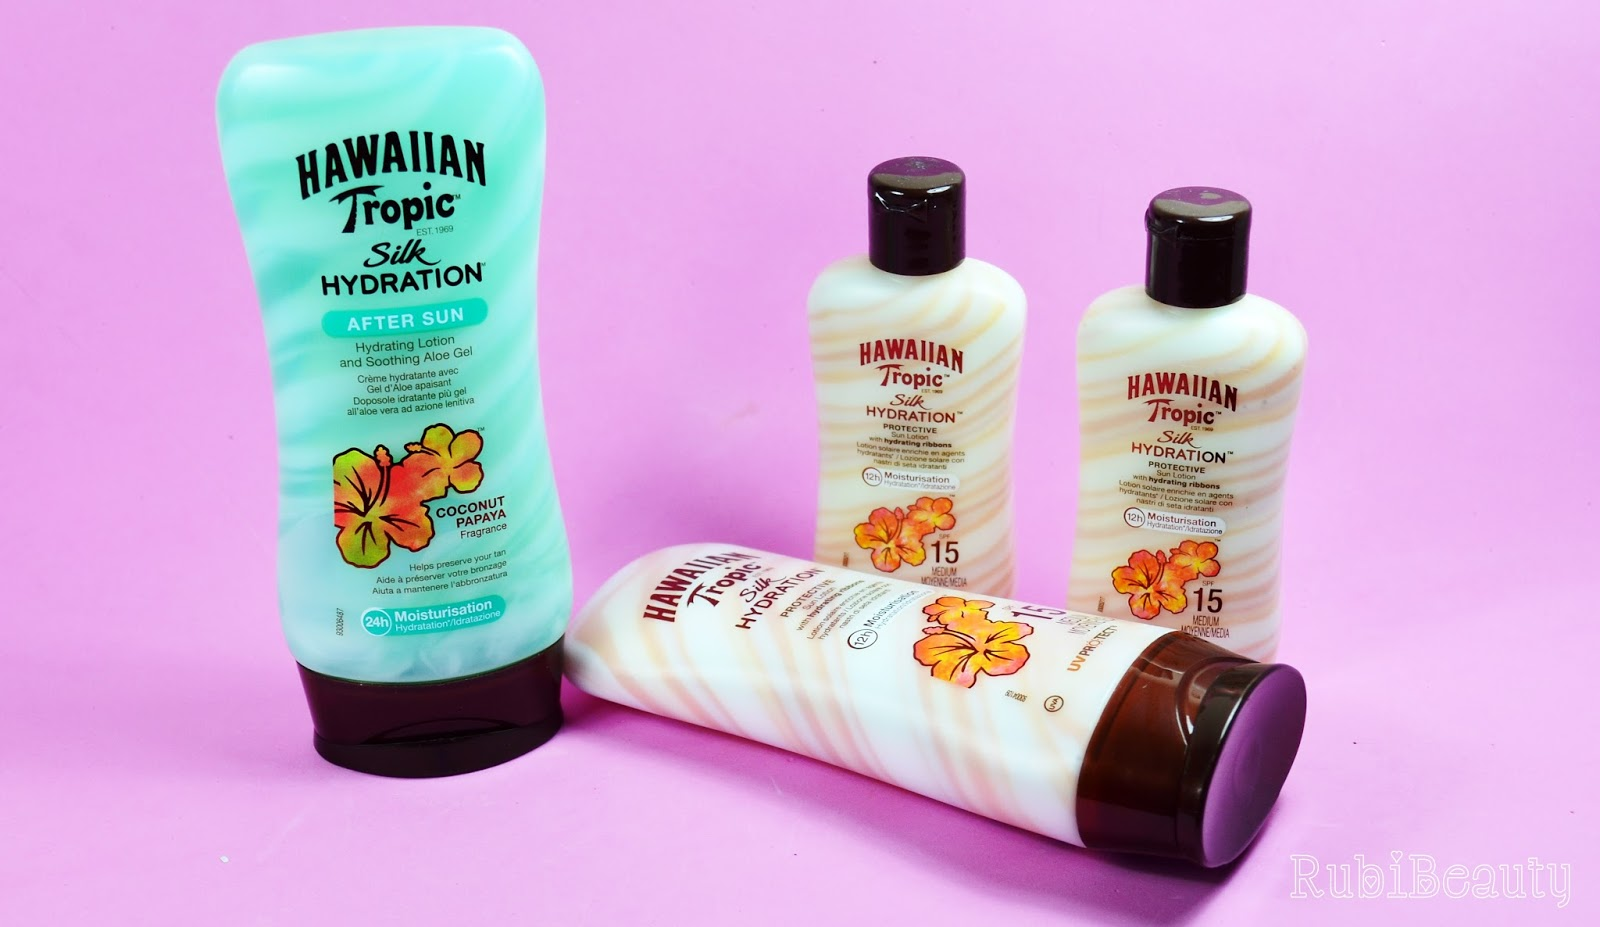 rubibeauty review hawaiian tropic silk hydration protector solar aftersun trnd